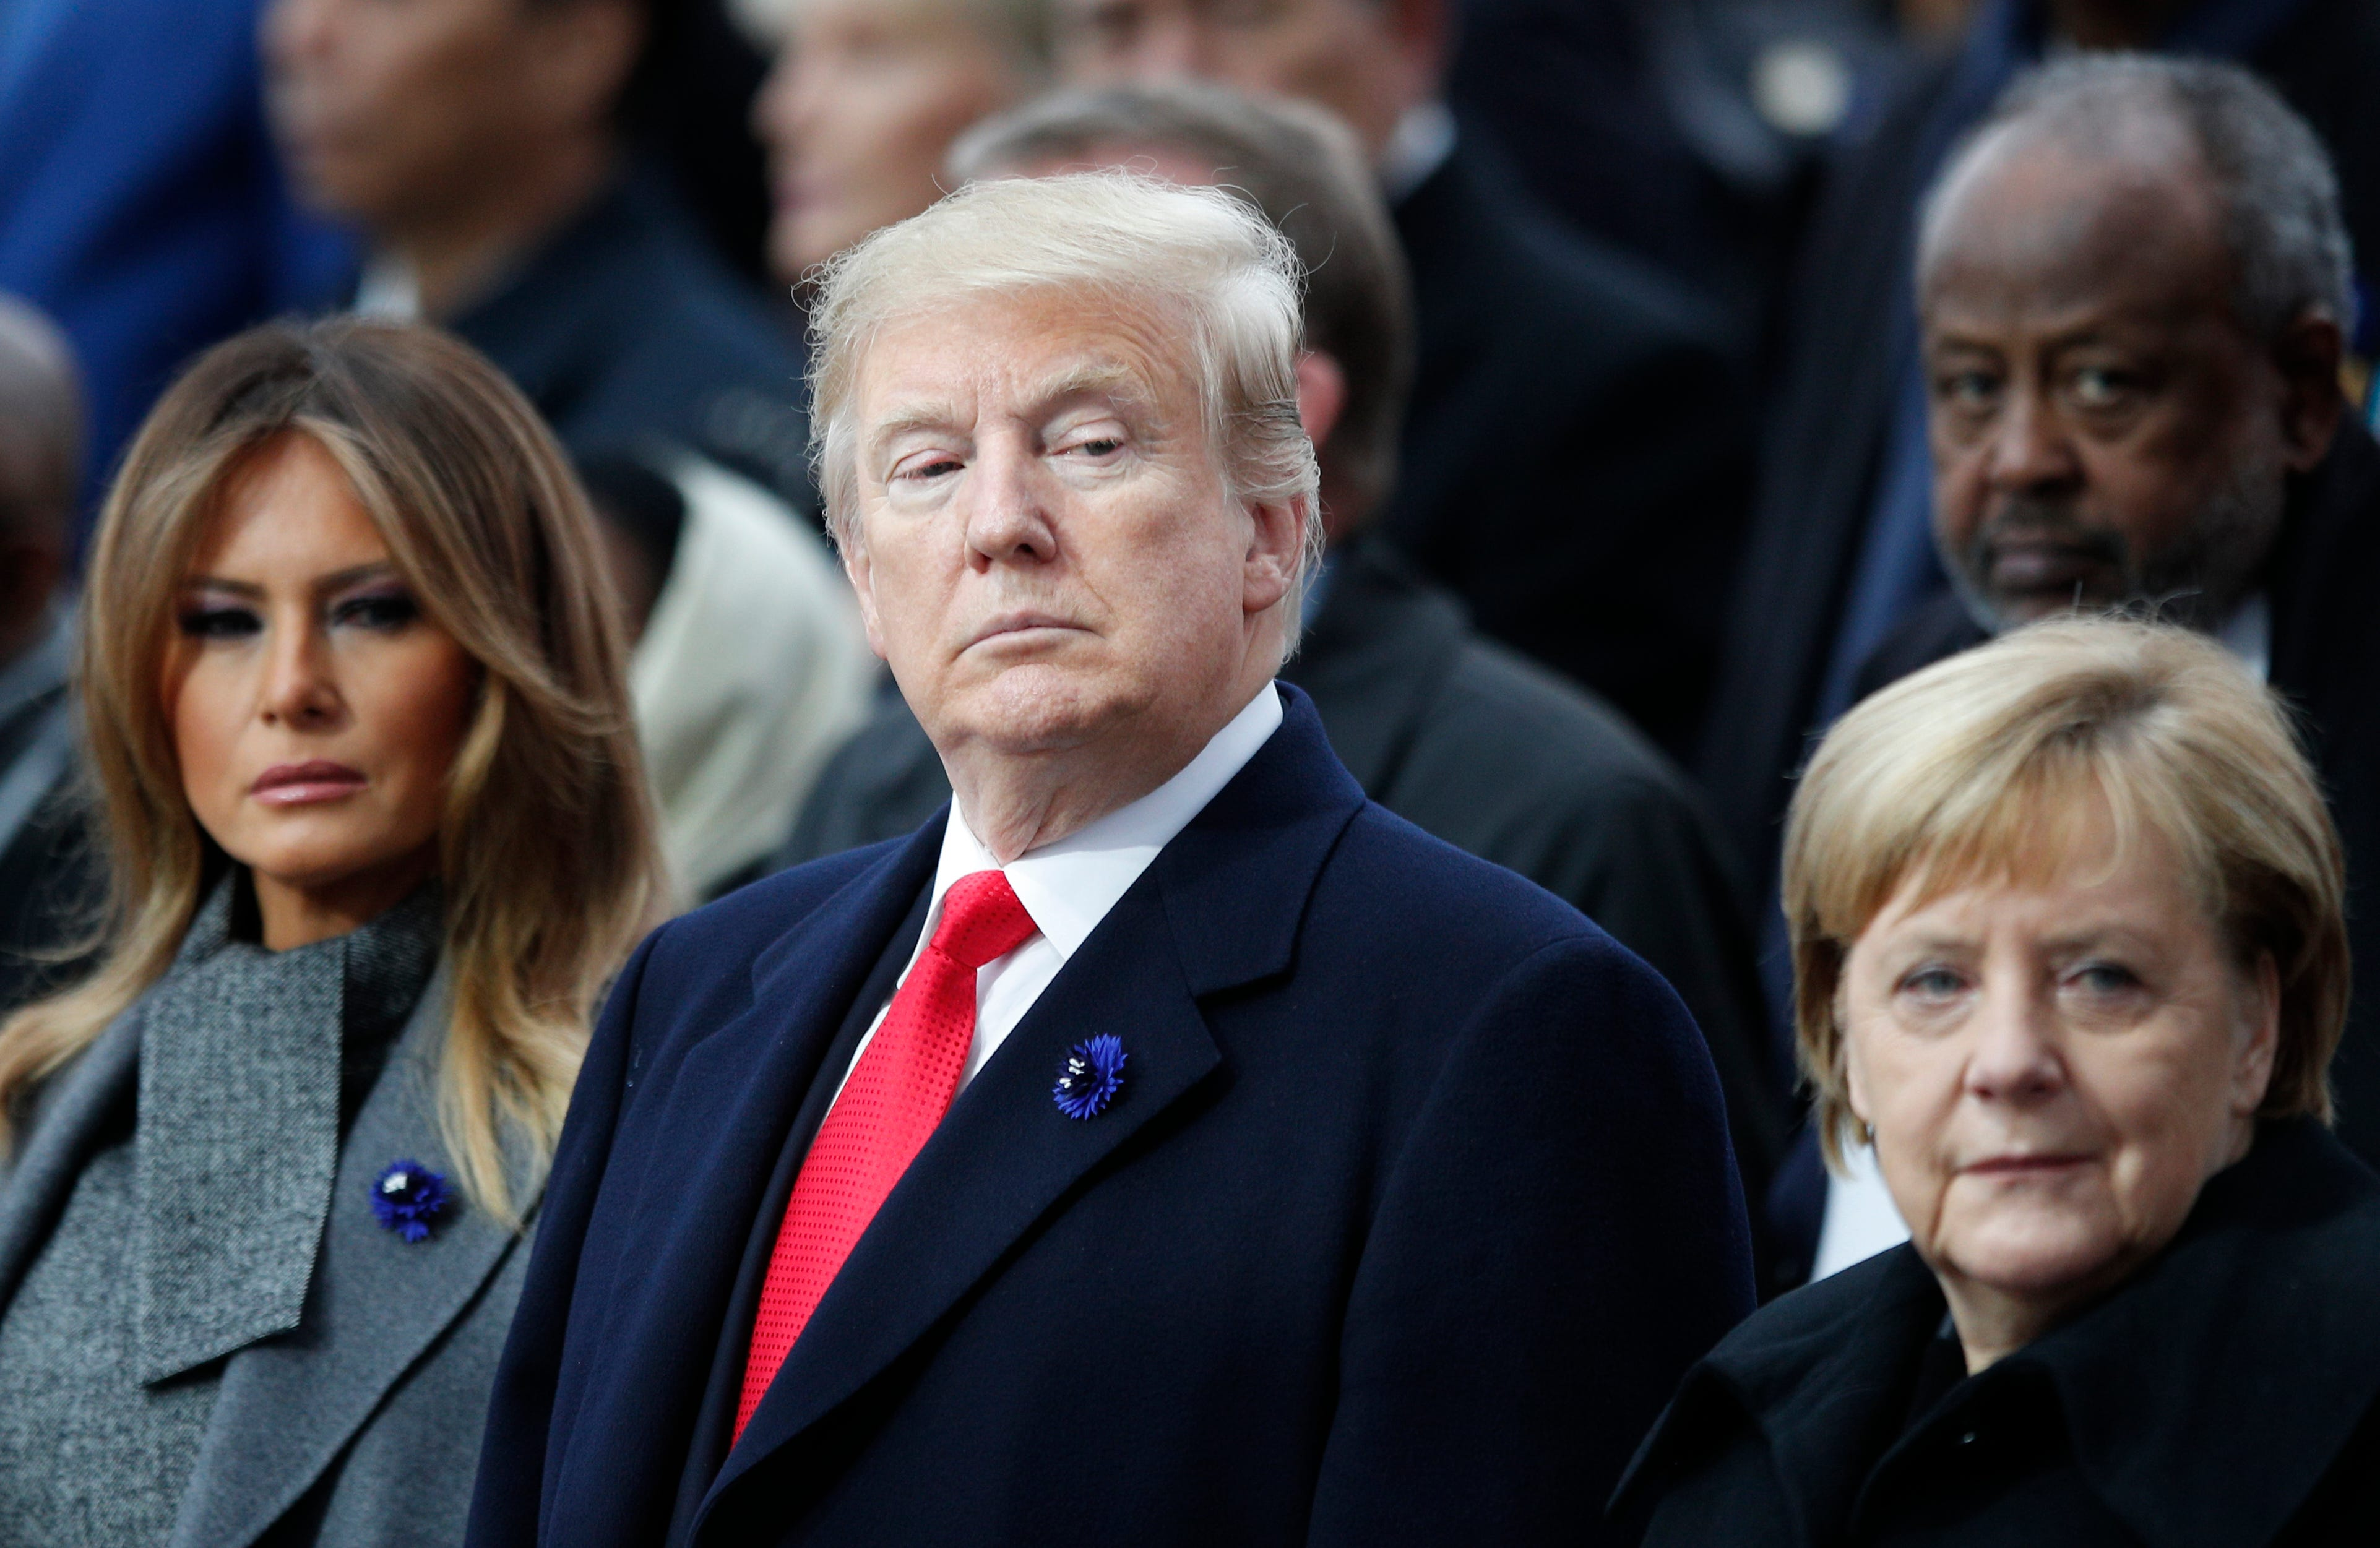 Macron, world leaders rebuke 'nationalism' at World War I event attended by Trump | AZ Central